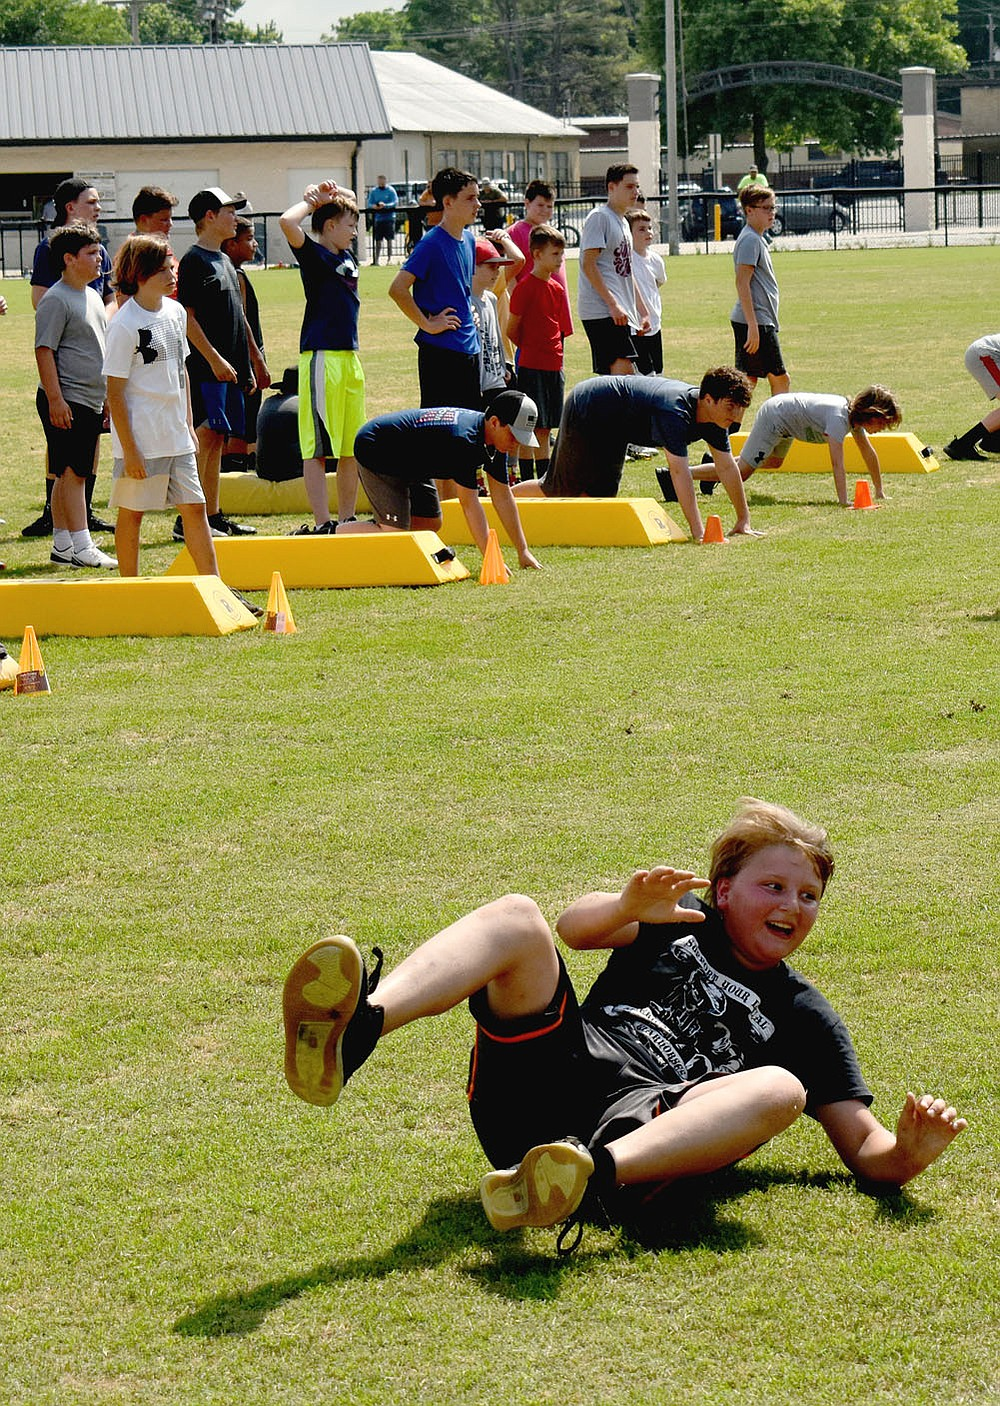 MARK HUMPHREY  ENTERPRISE-LEADER/Prairie Grove rising sixth grader Mayson Chronister rolls out of a bear crawl while participating in an agility drill during Prairie Grove's annual pee wee football camp on Wednesday, June 9, 2021.